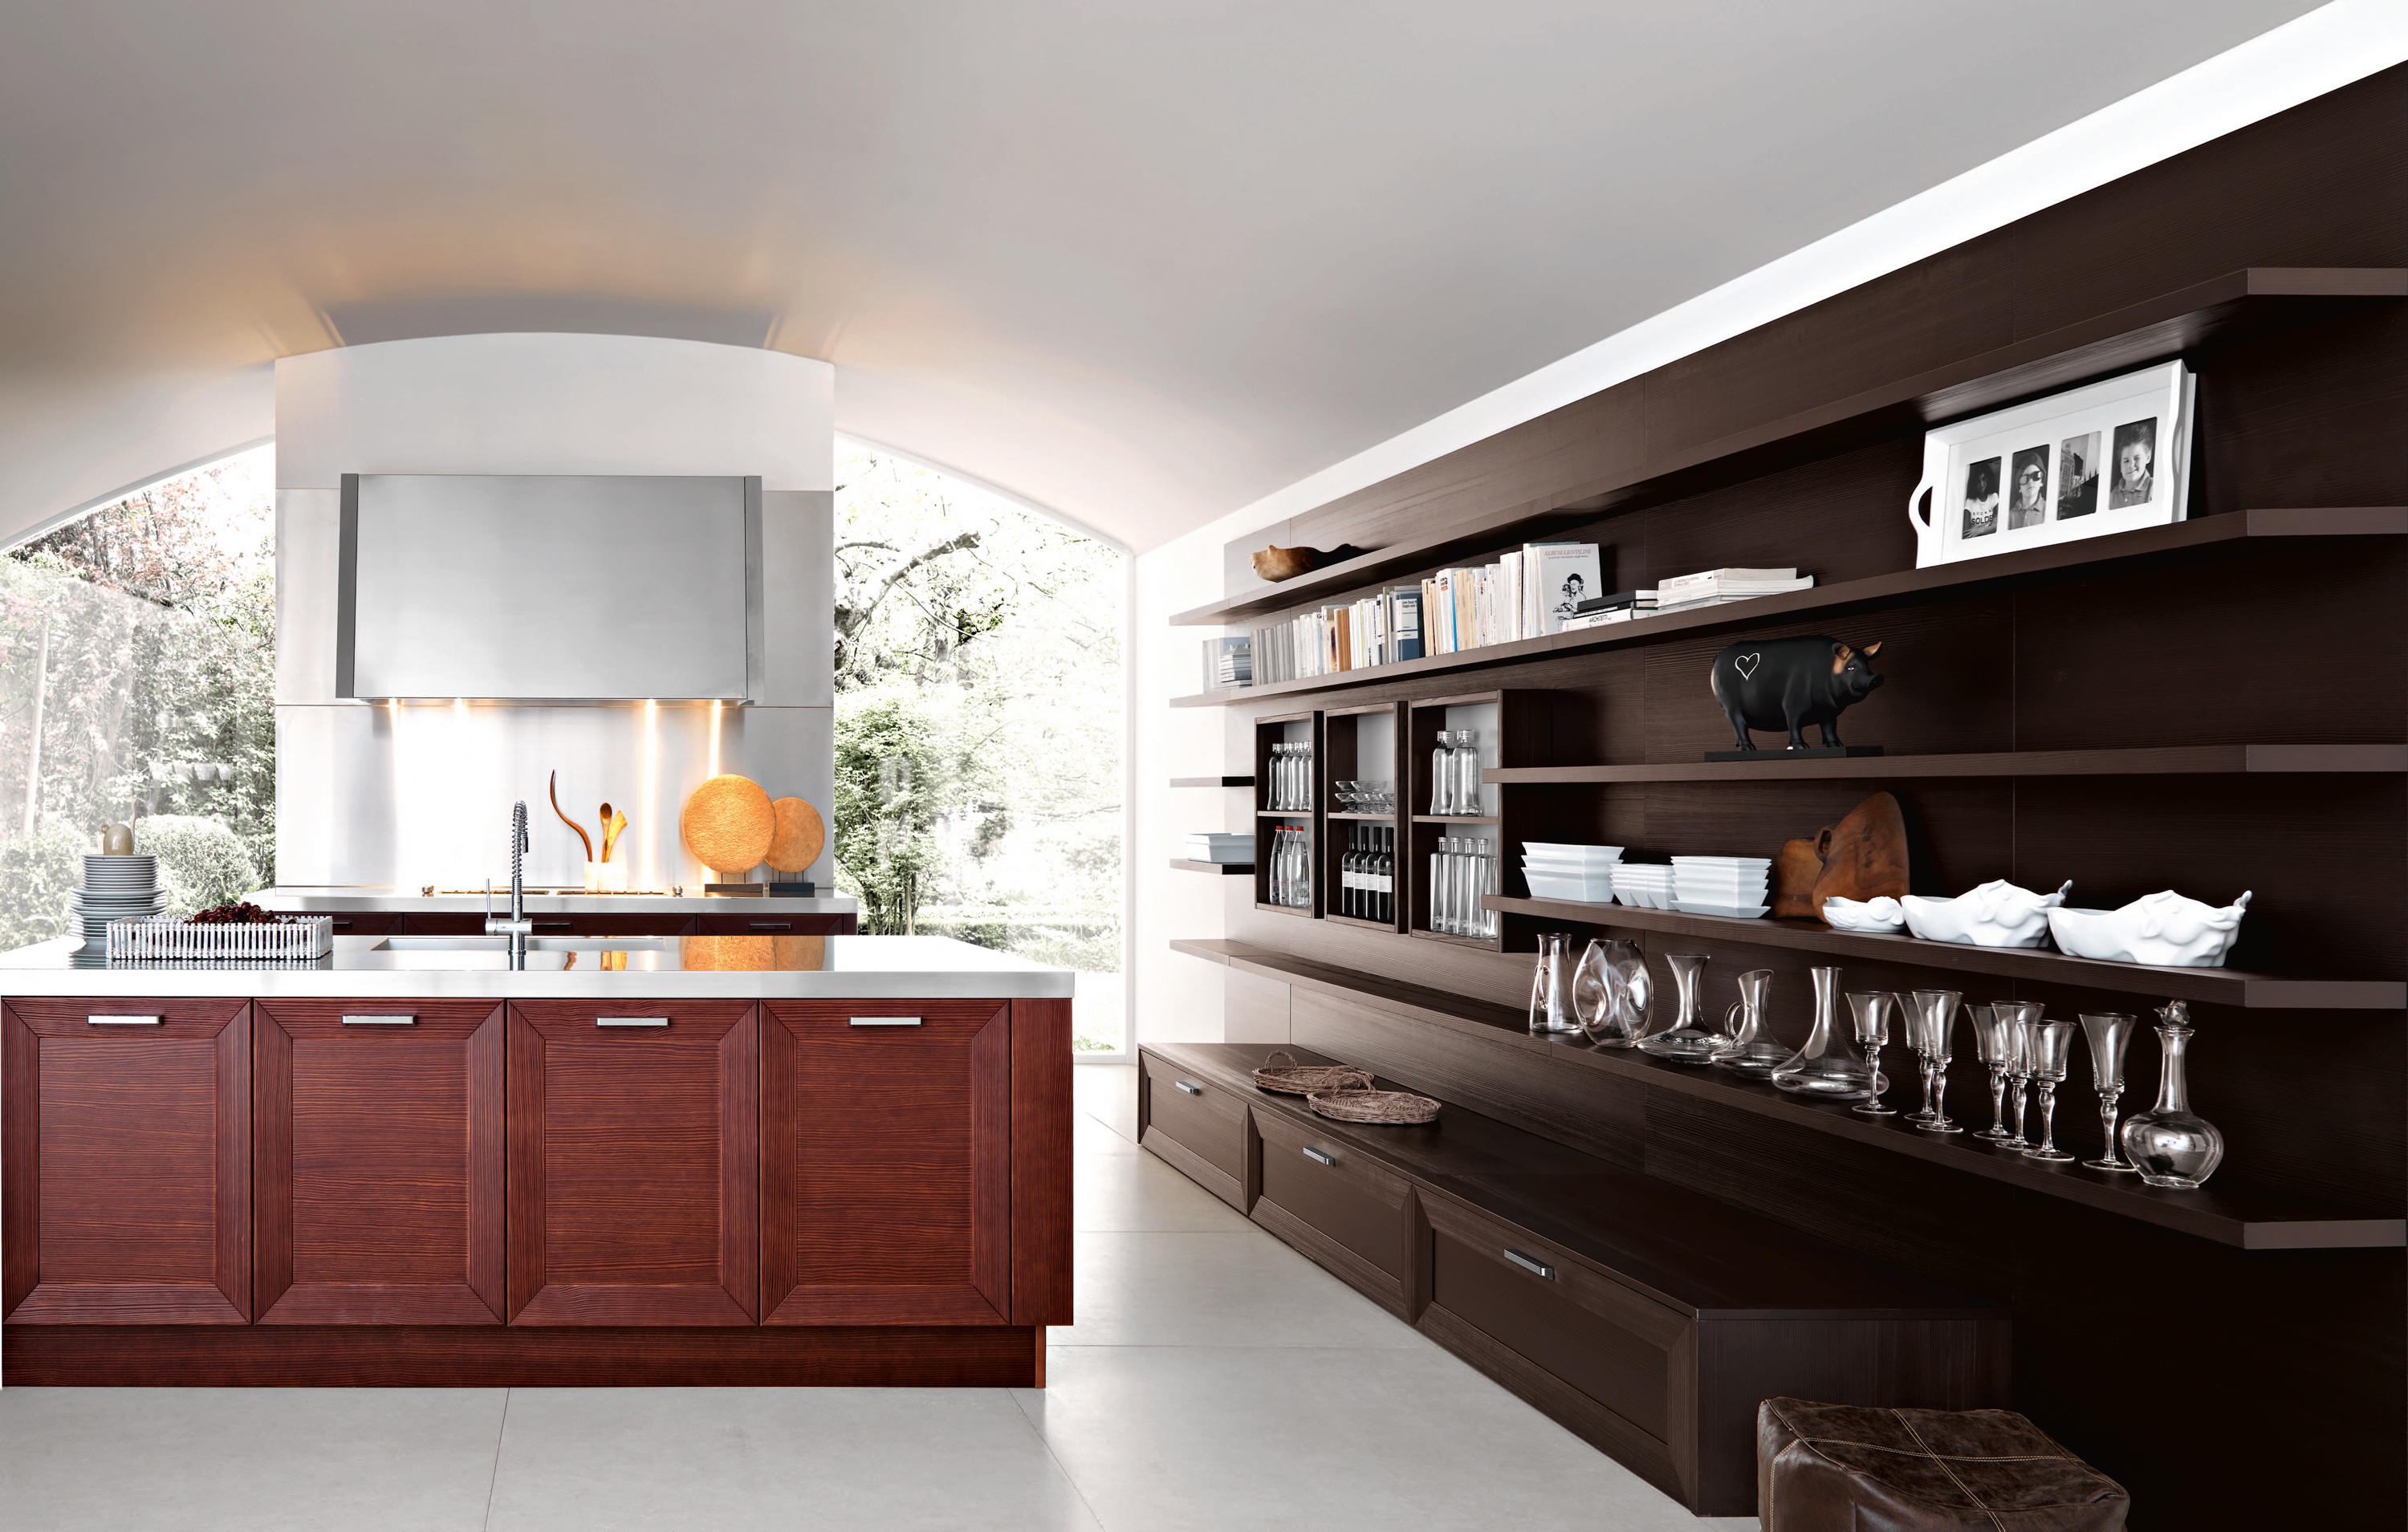 Noa composition 1 fitted kitchens from cesar for Map arredamenti